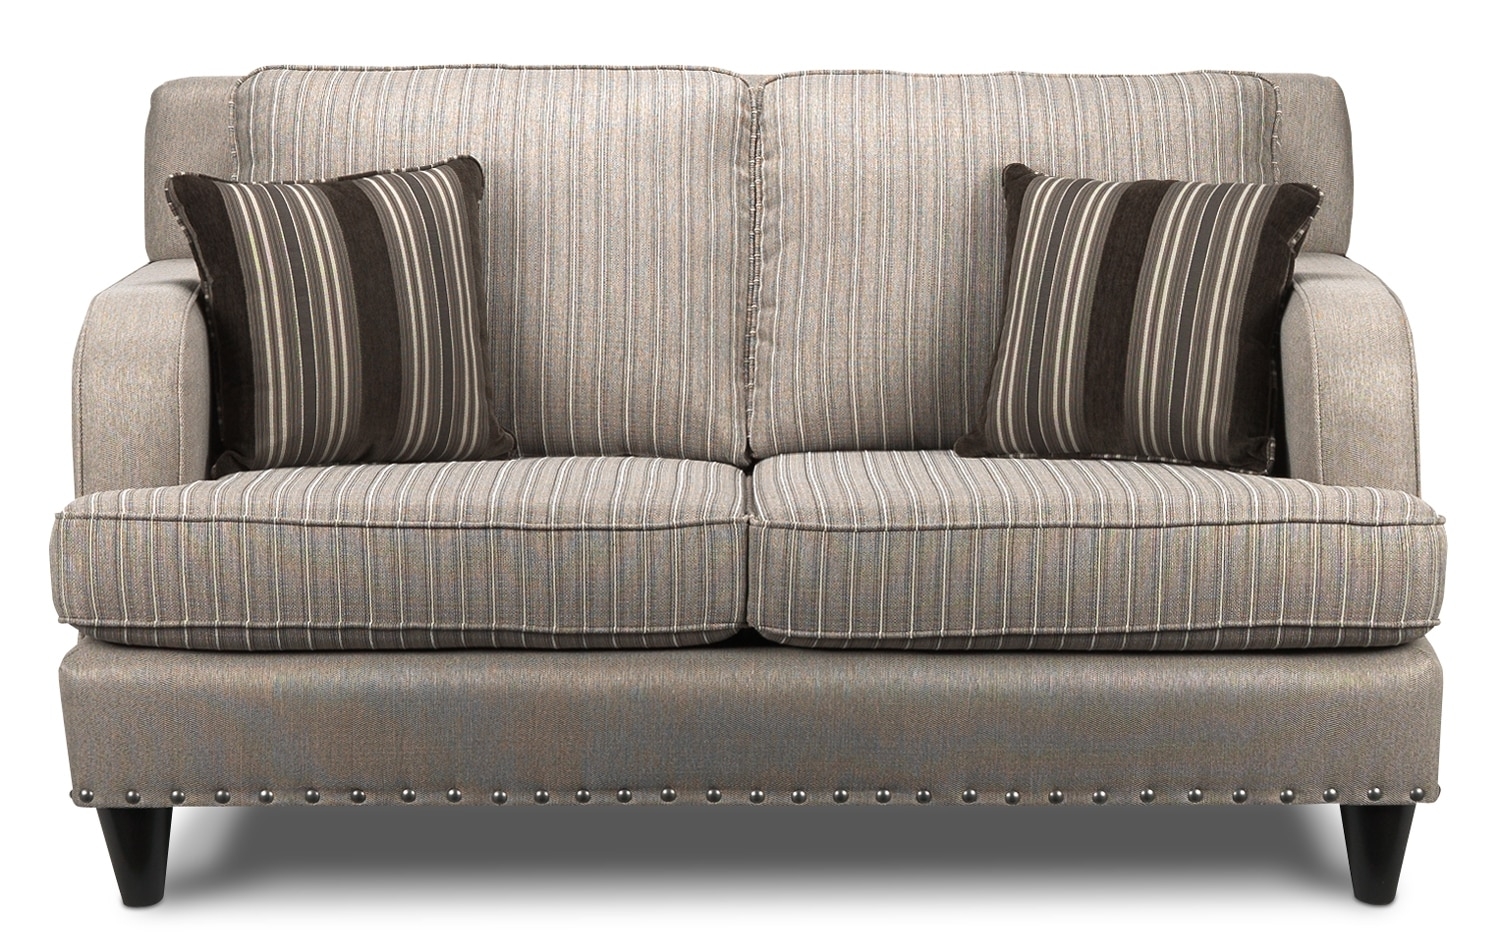 Living Room Furniture - Marielle Loveseat - Light Brown